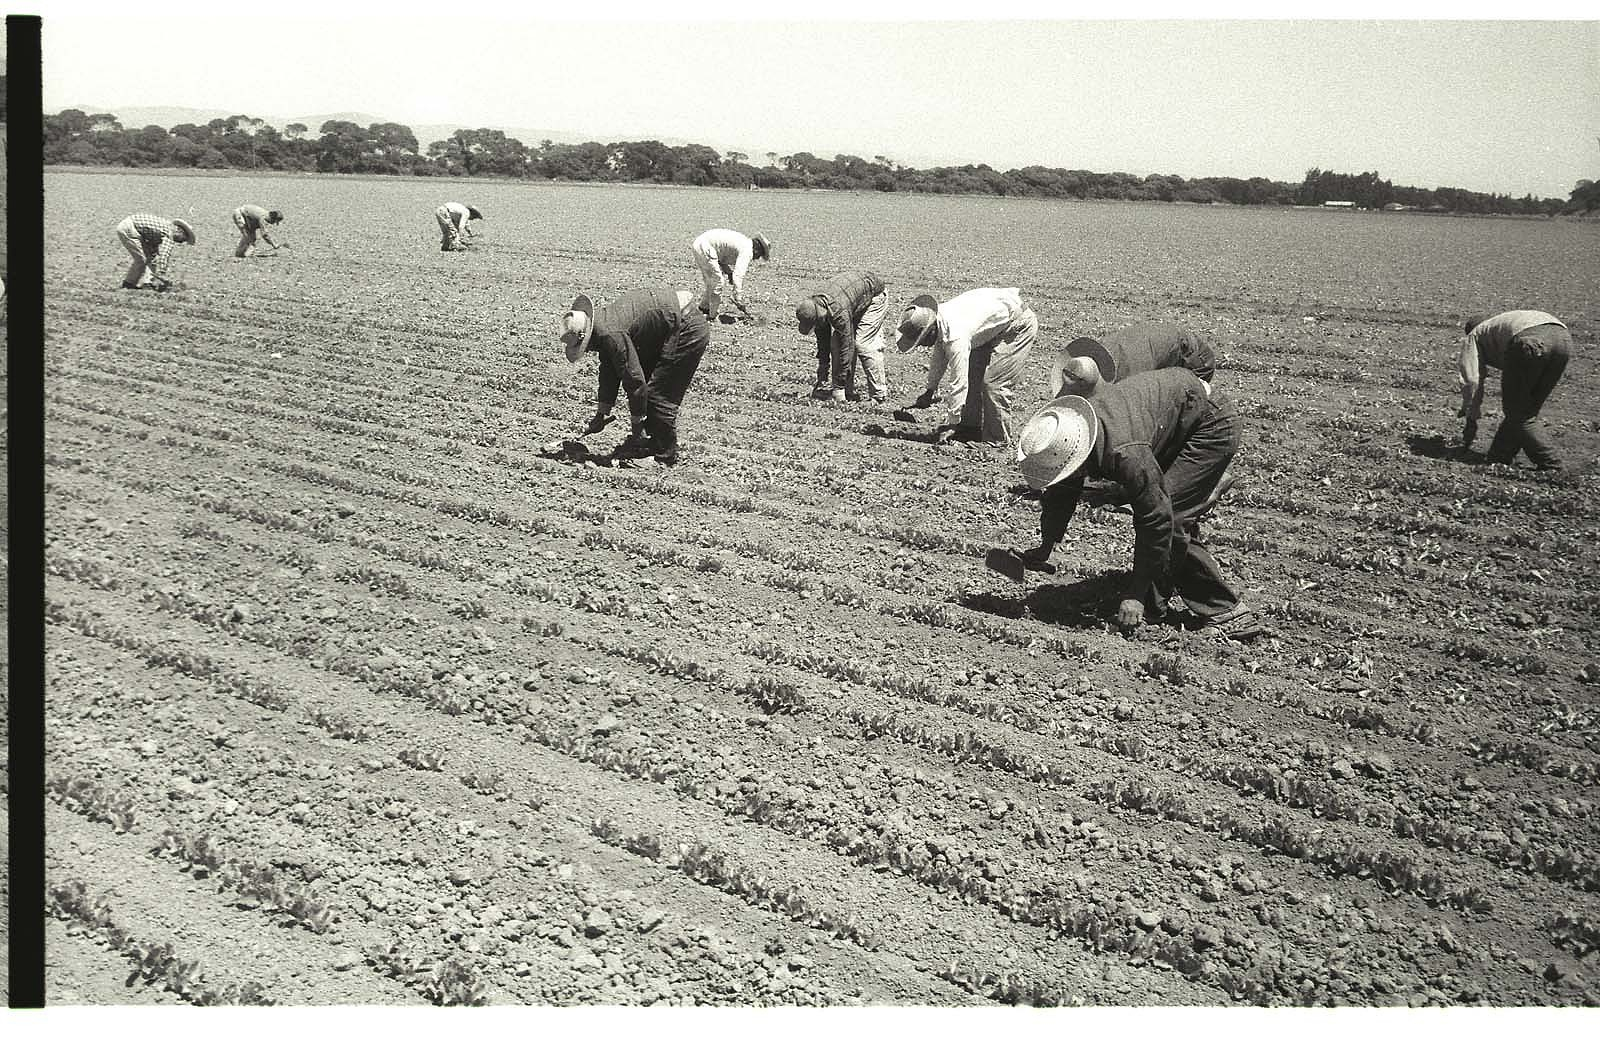 Braceros work in a lettuce field with short-handled hoes in the Salinas Valley, California. Many braceros worked six or more days per week stooped o ver, and some continued with loading and packing jobs after a full day in the field.